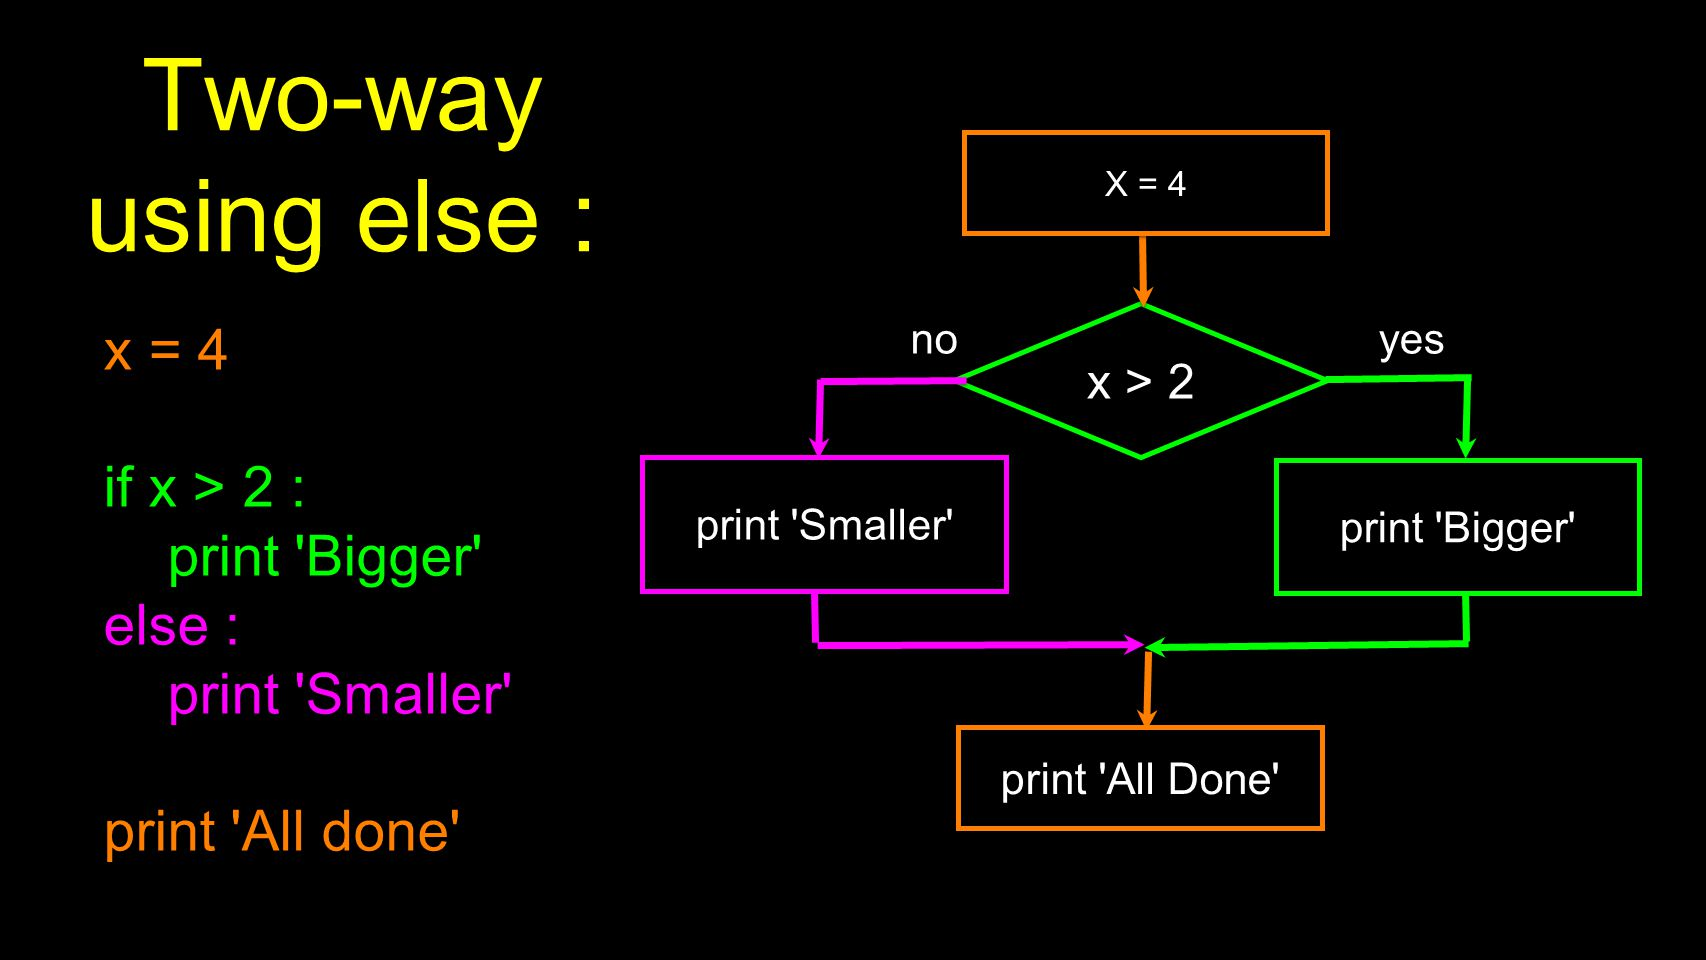 Two-way using else : x = 4 if x > 2 : print Bigger else : print Smaller print All done x > 2 print Bigger yes no X = 4 print Smaller print All Done